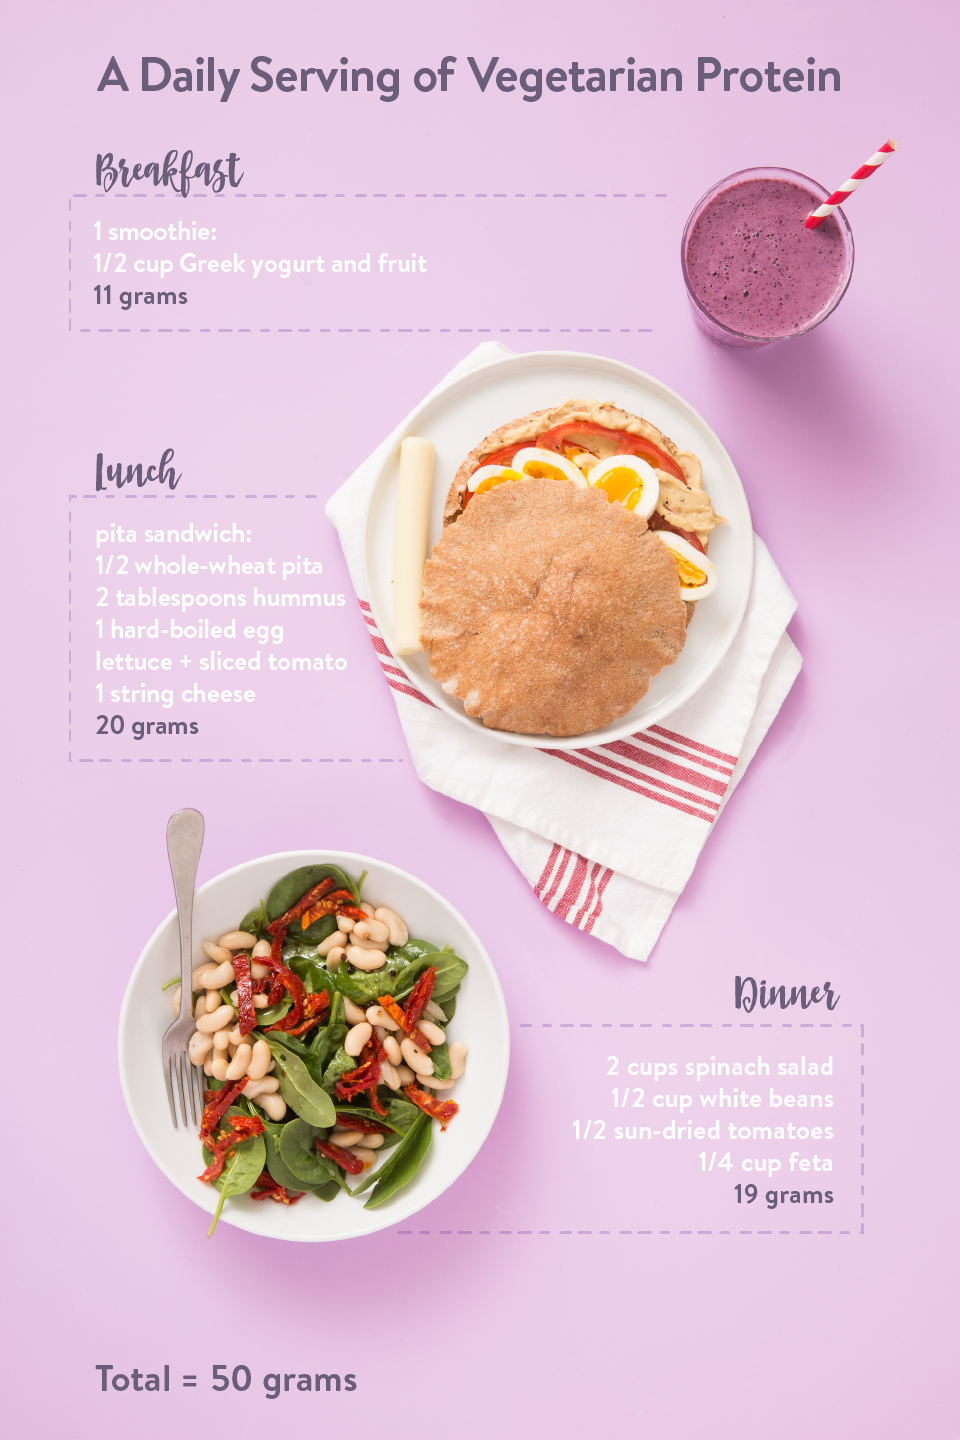 diet plan of 50 grams protein a day